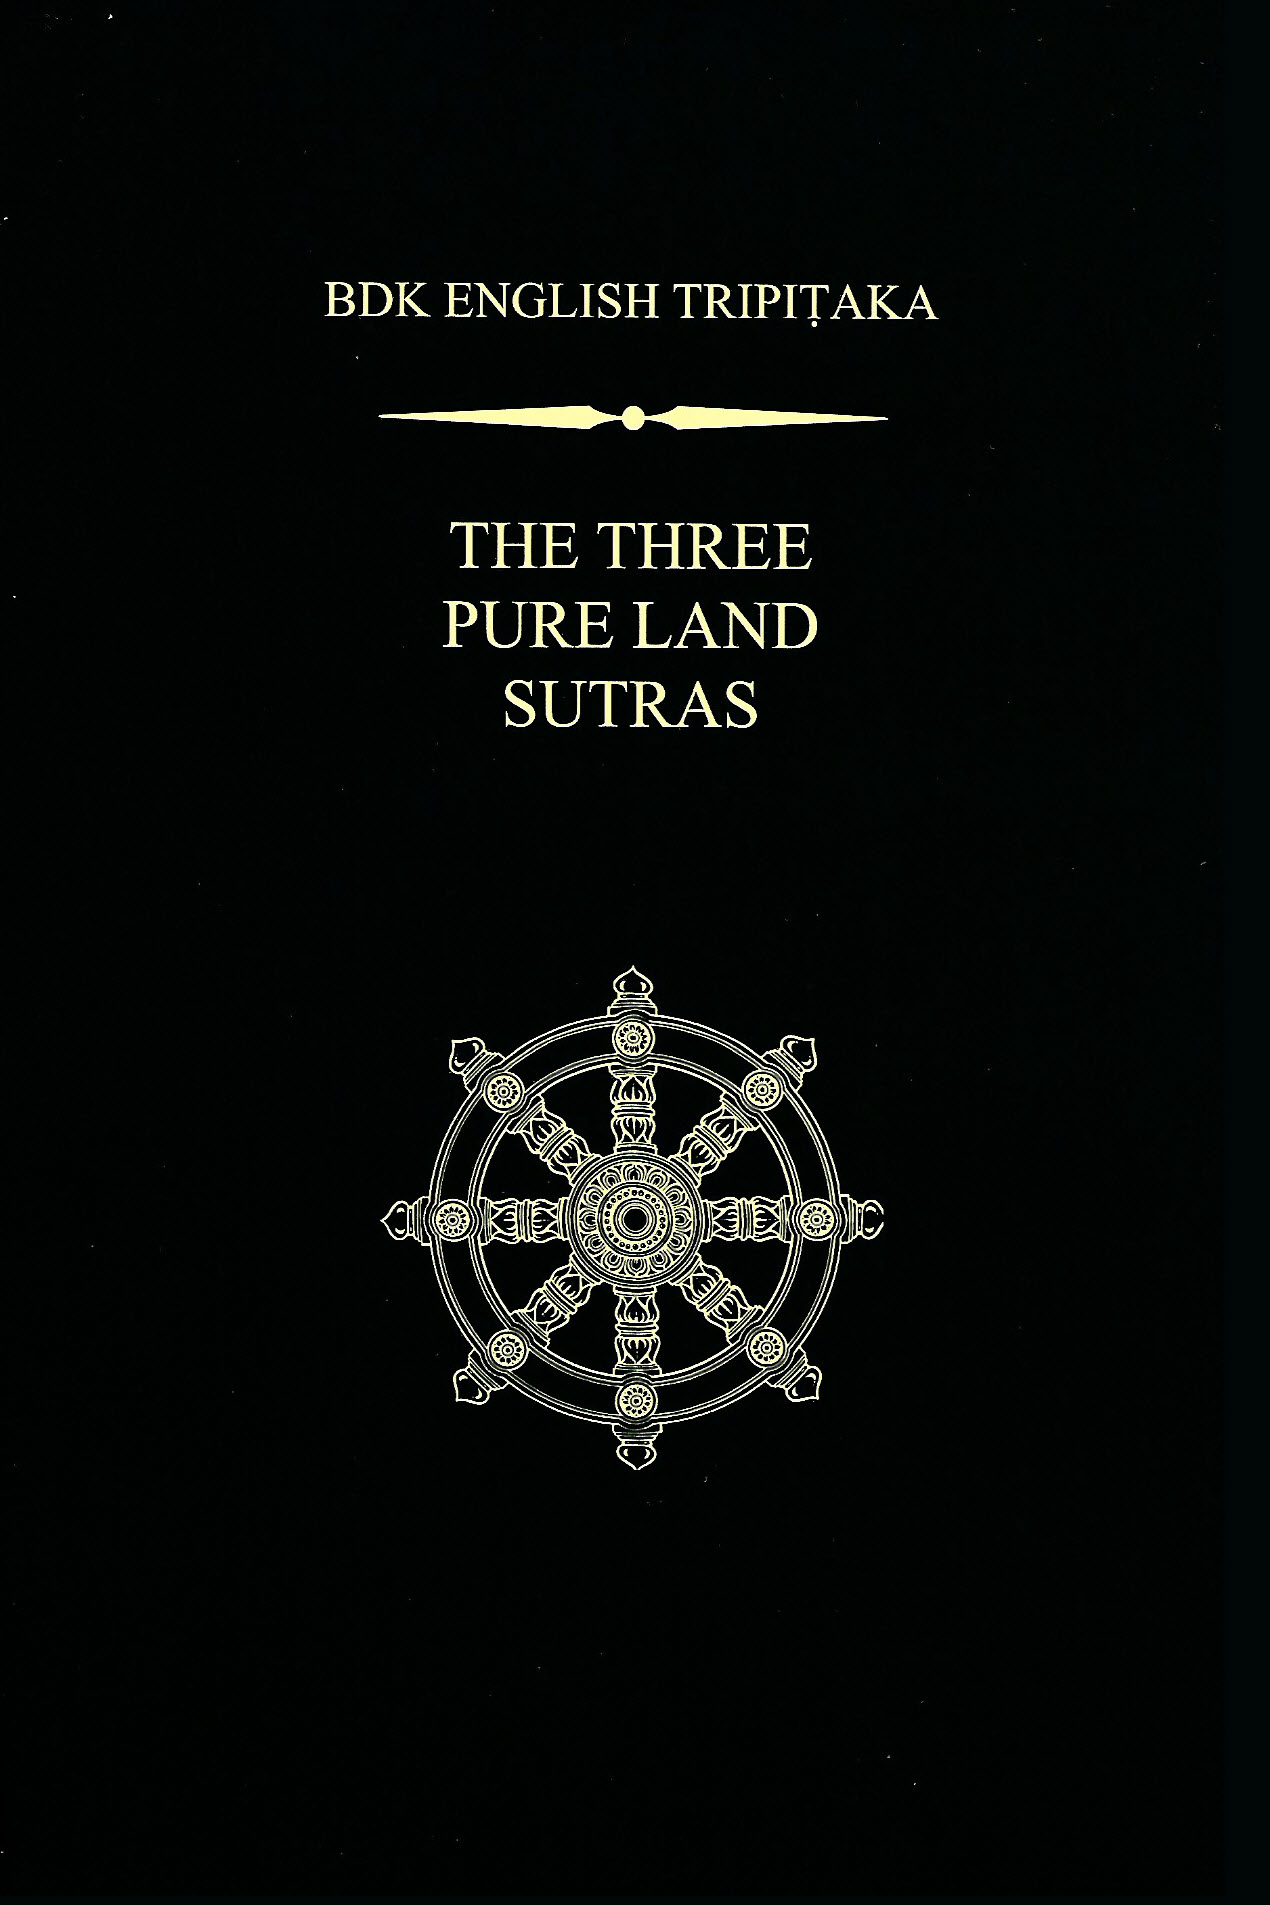 Three Pure Land Sutras cover art